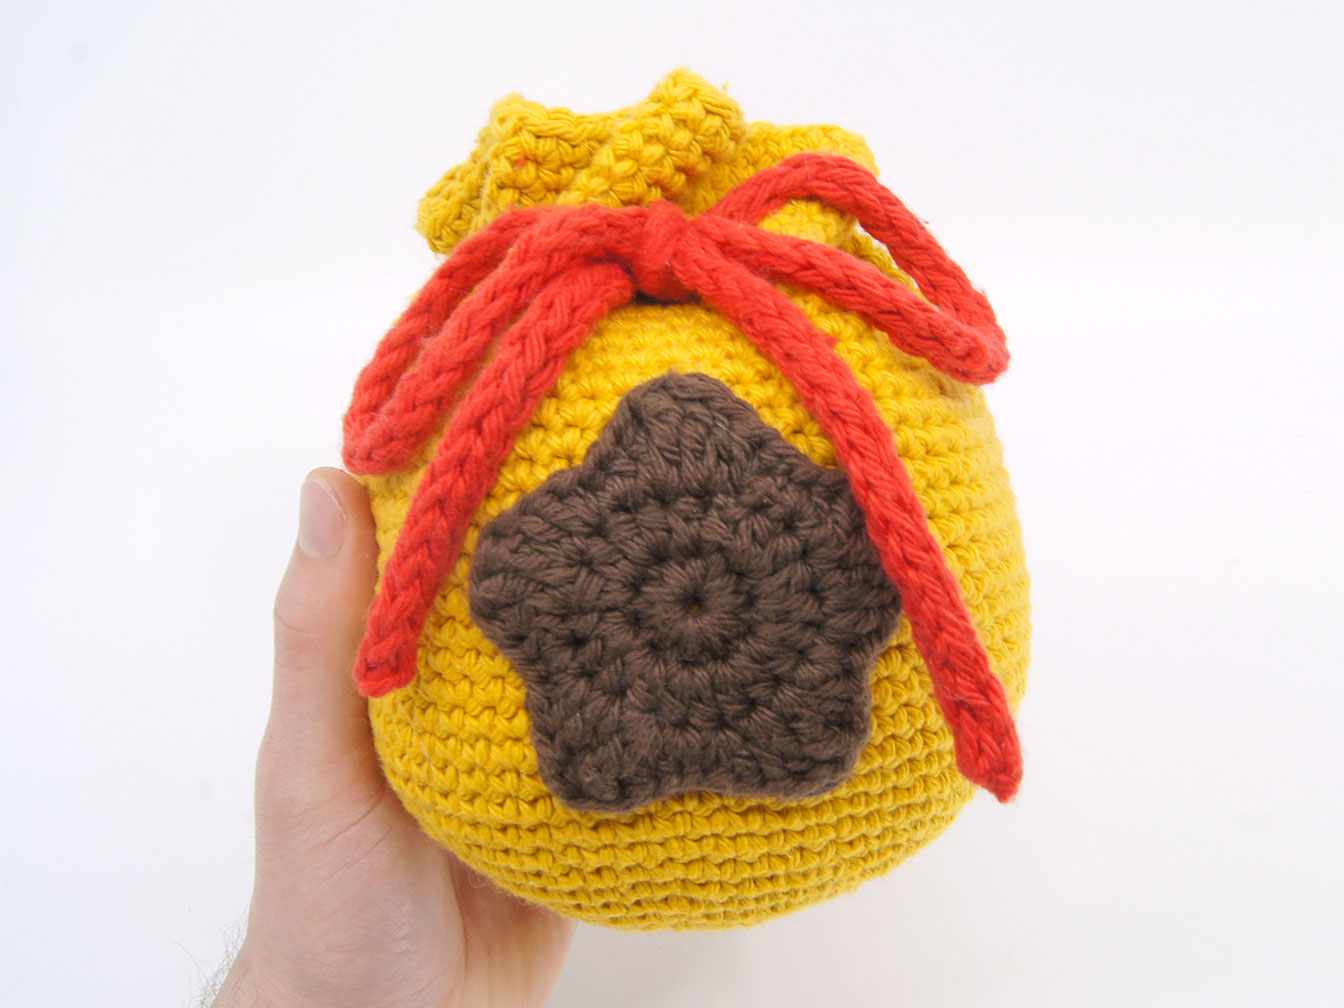 Bell Bag from Animal Crossing